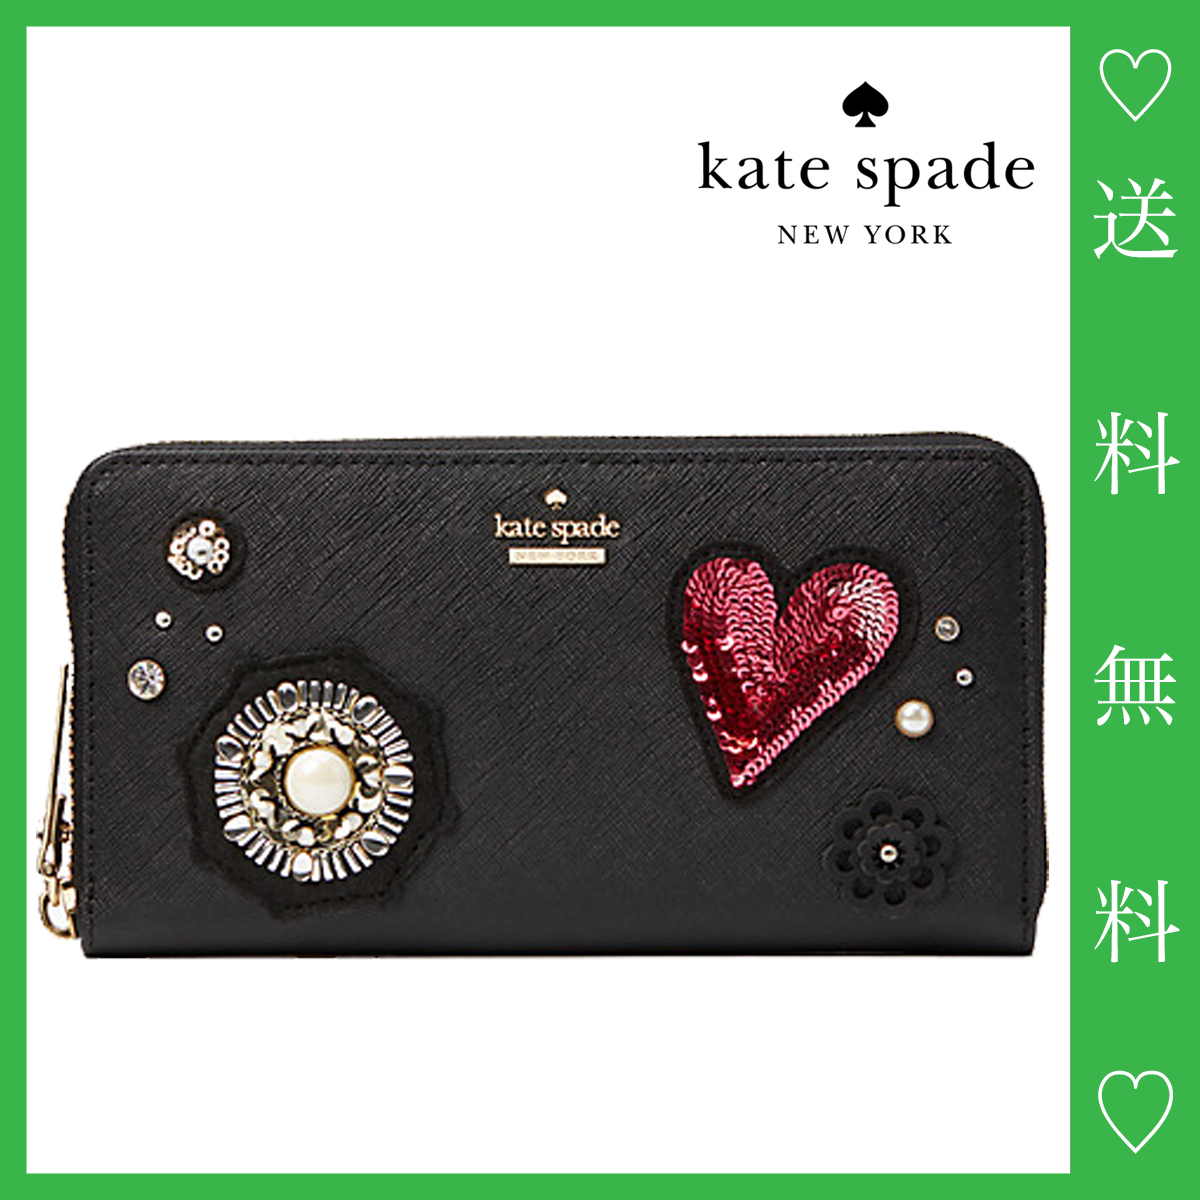 【Kate Spade 2018】finer things embellished lacey【長財布】